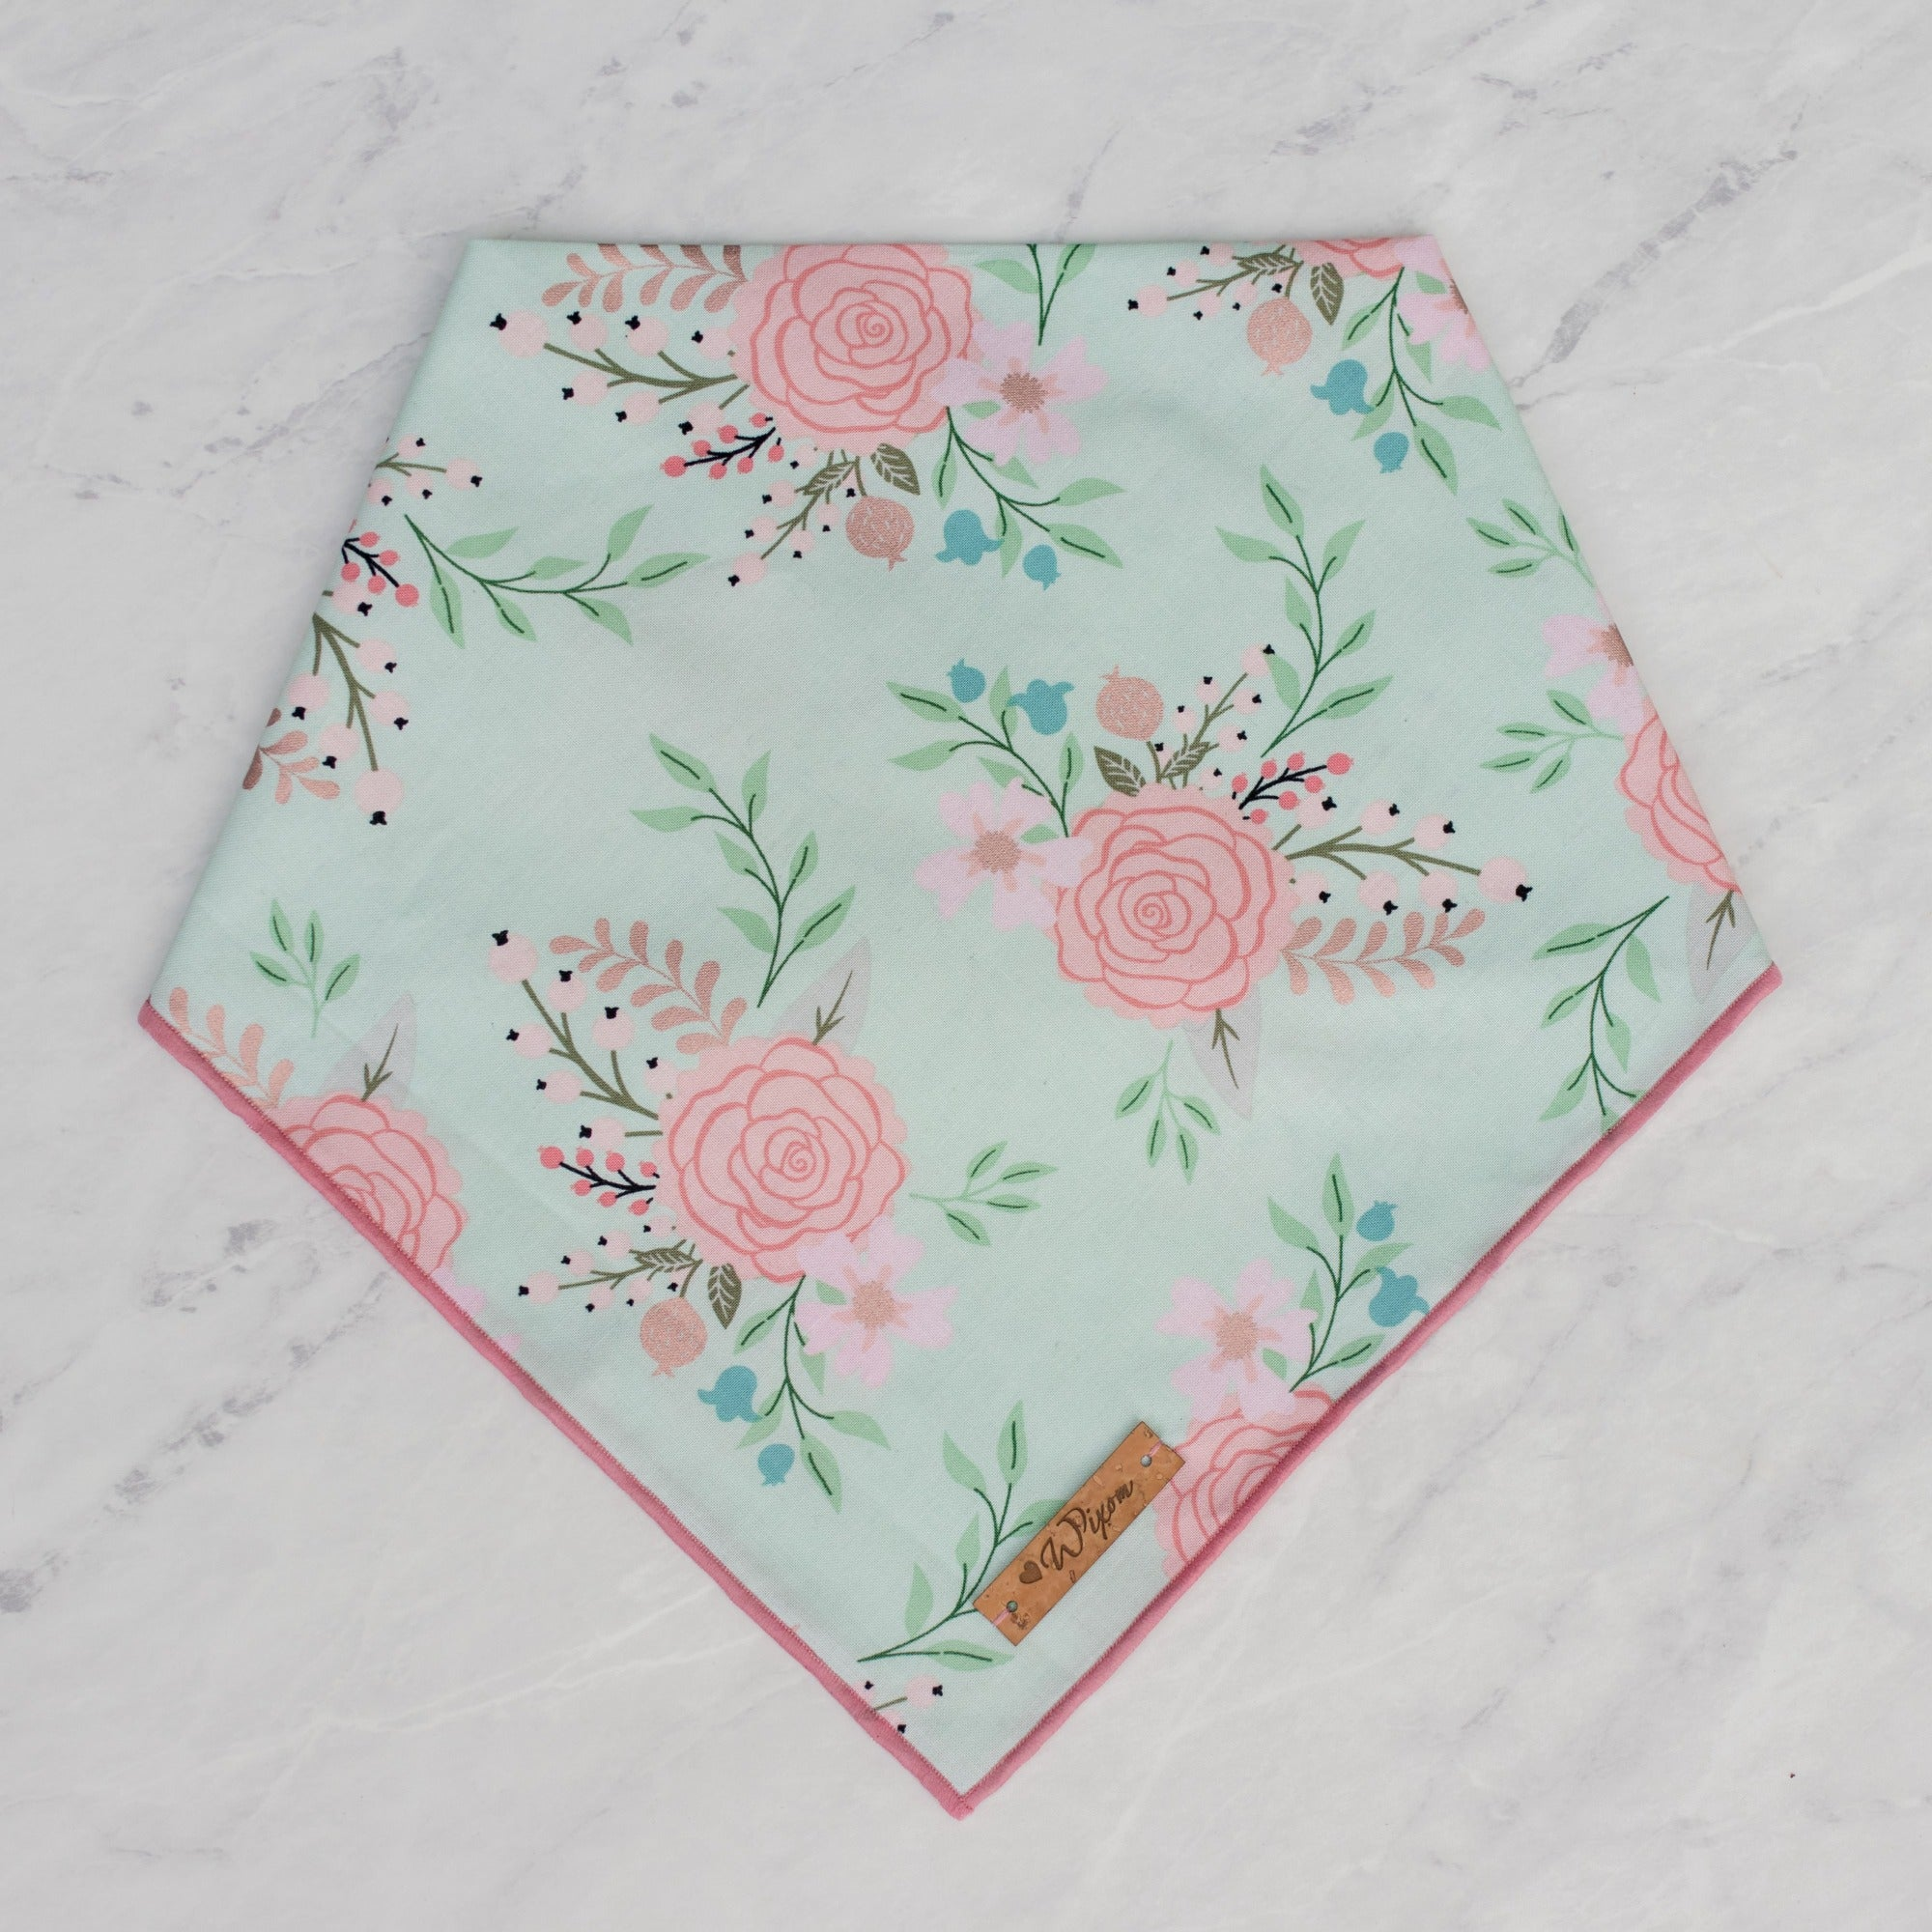 Bliss Handmade Dog Bandana